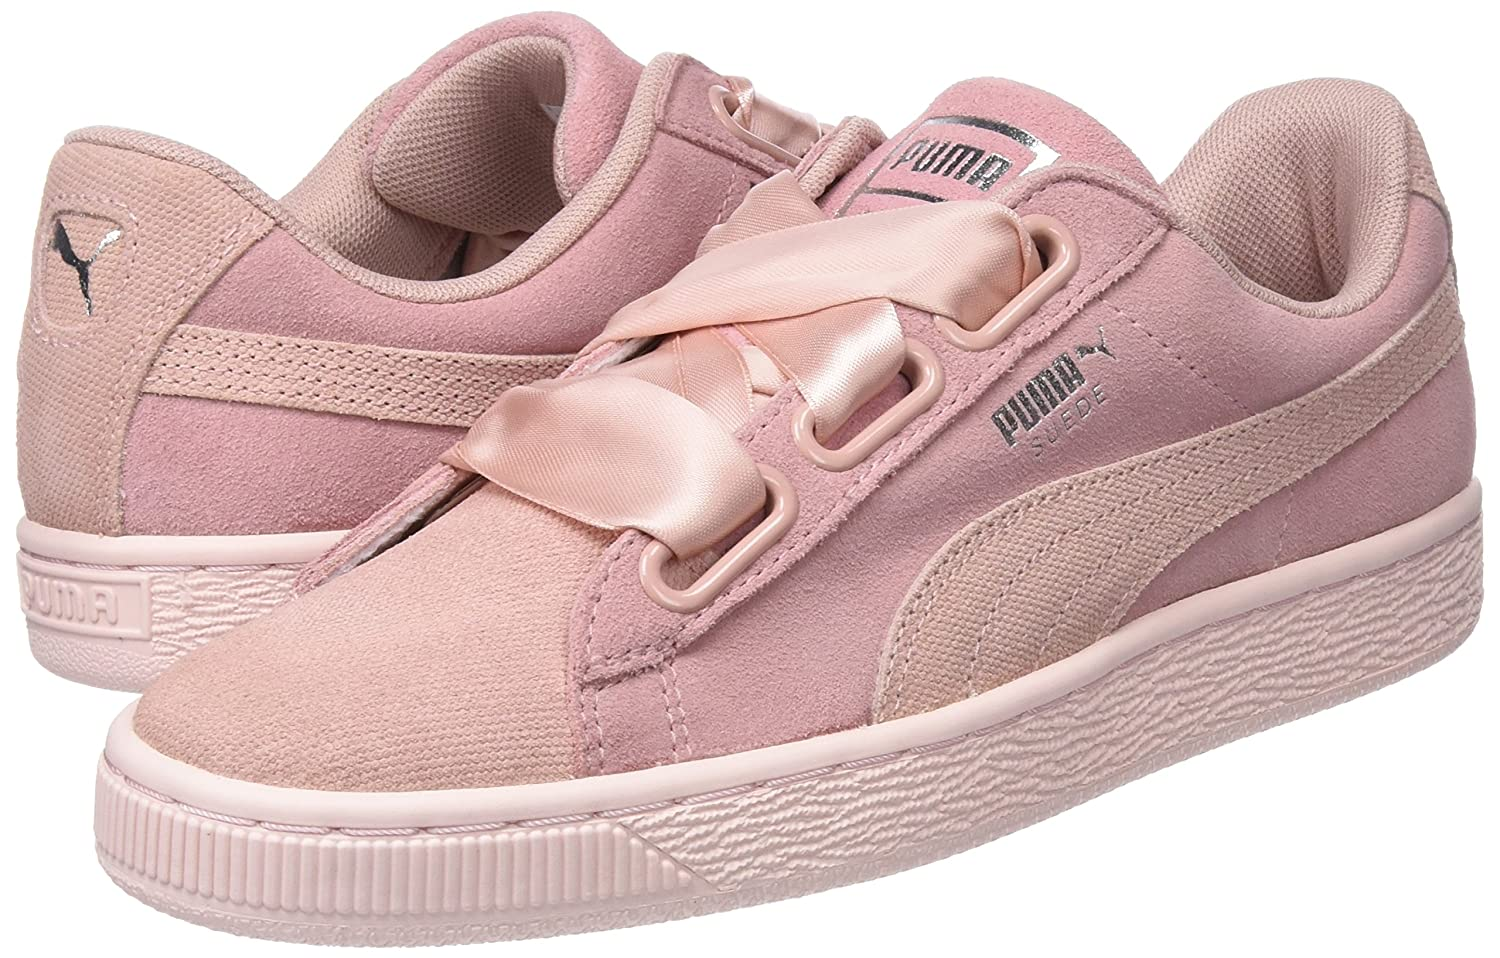 Puma Women's Suede Heart Pebble WN's Trainers